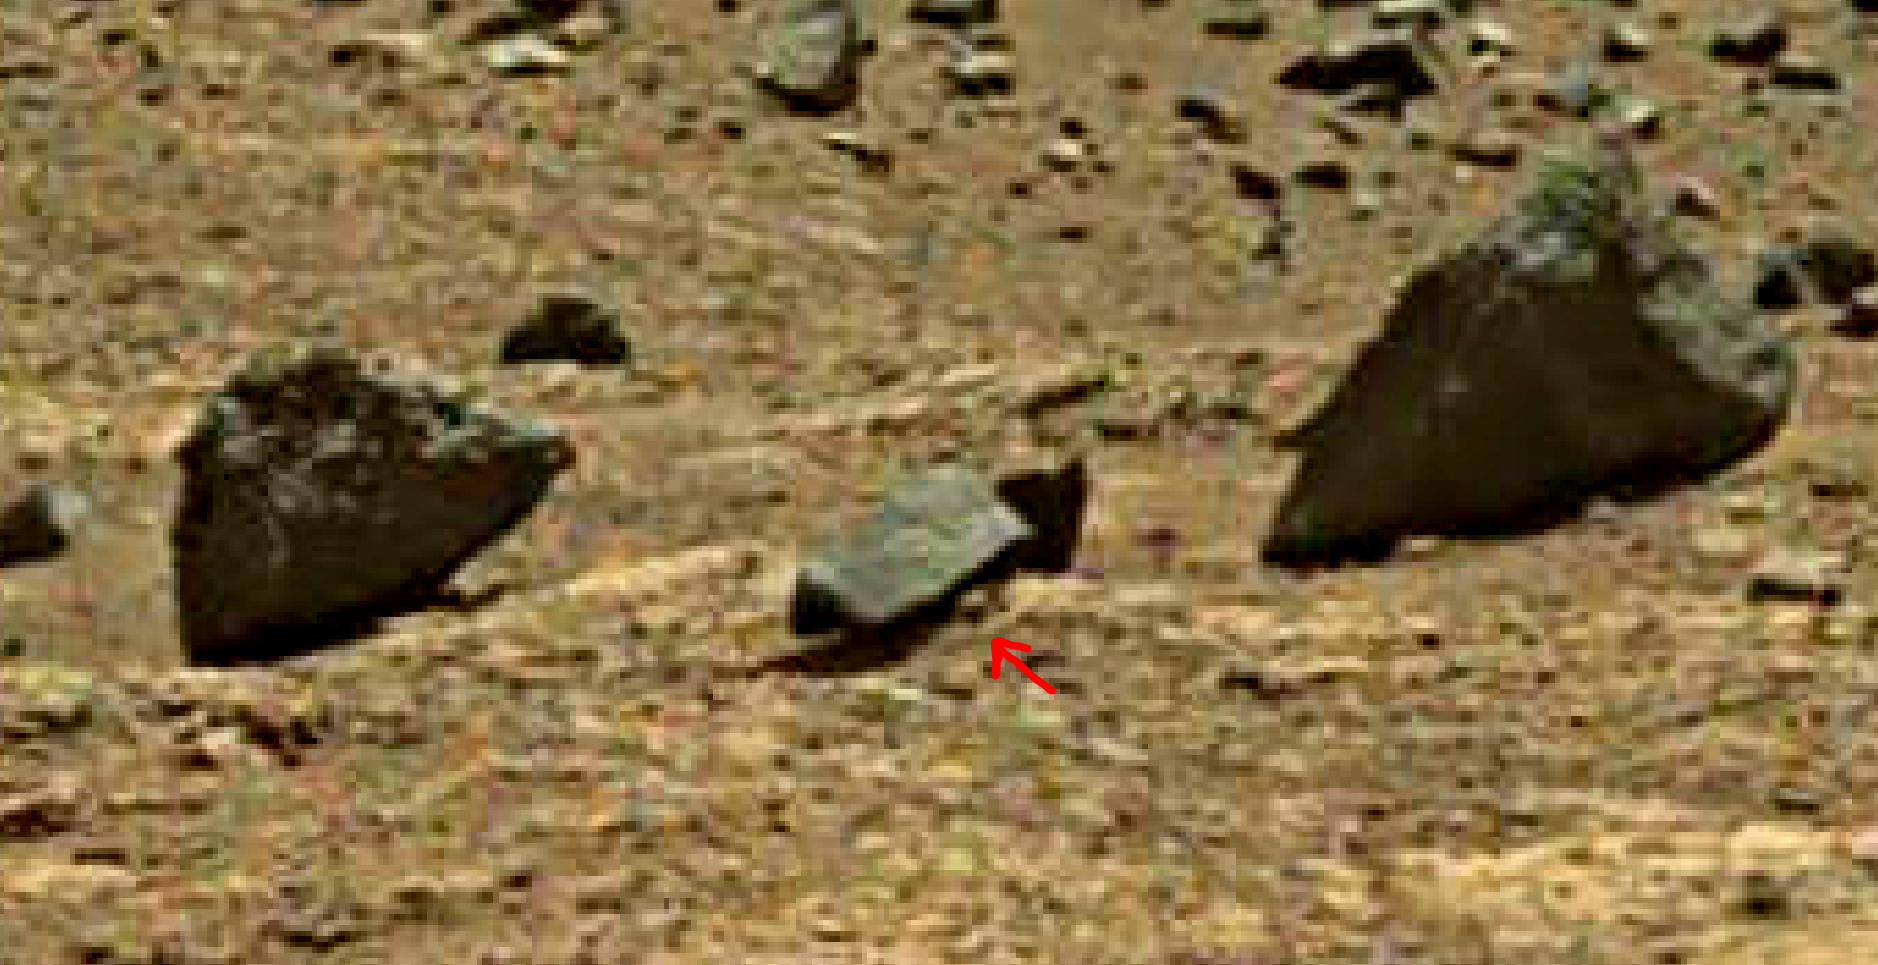 mars sol 1401 anomaly artifacts 12 was life on mars